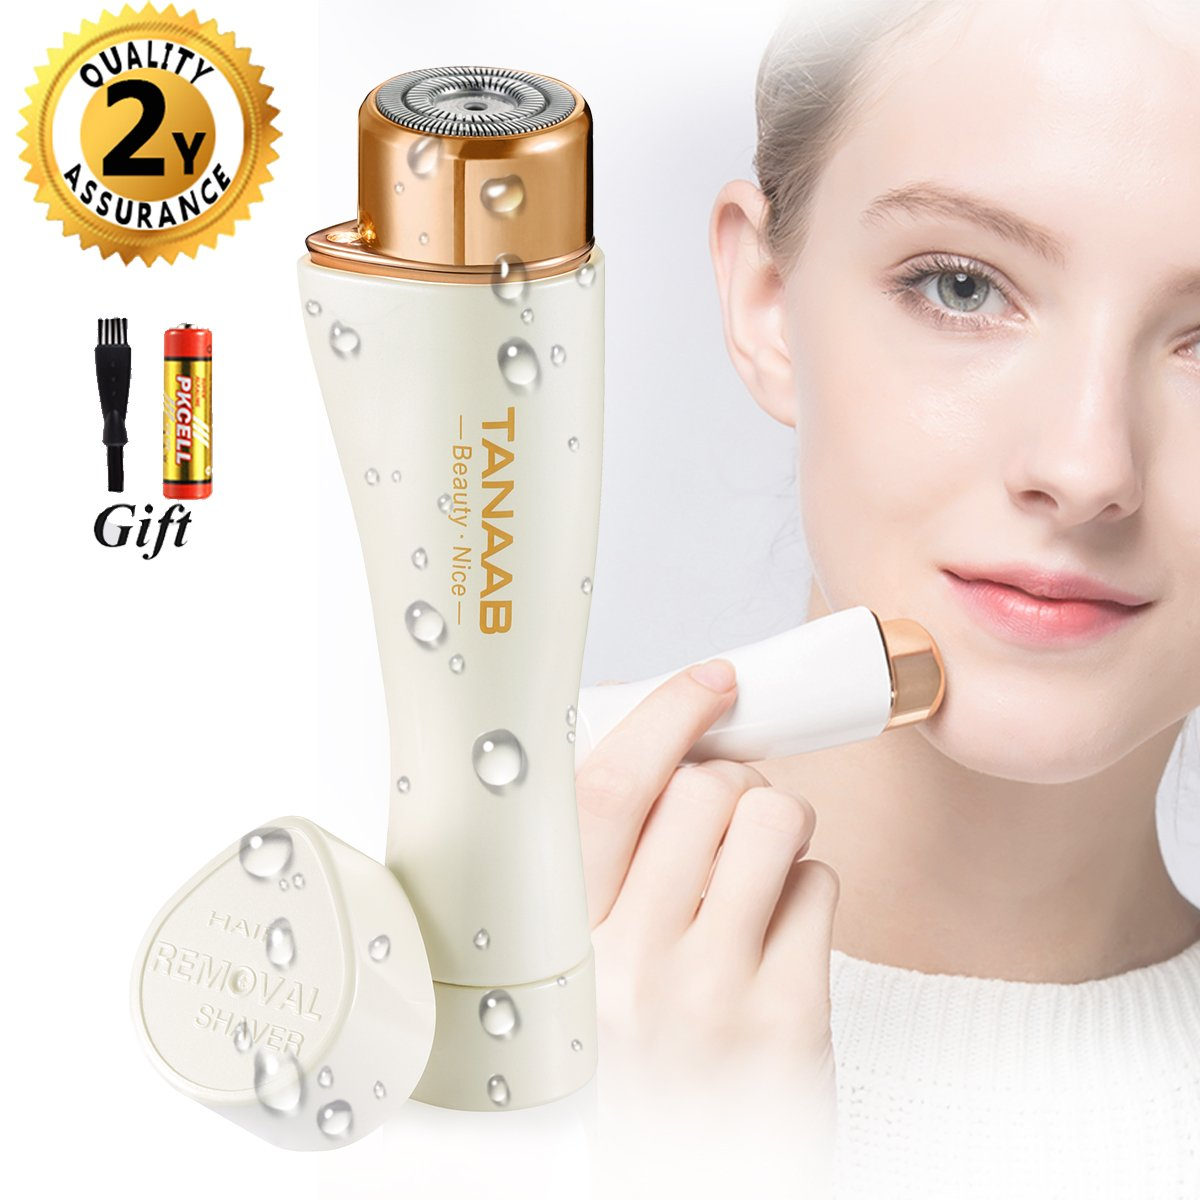 TANAAB Facial Hair Removal for Women Waterproof Flawless Painless Women's Facial Hair Remover Built-in LED Light